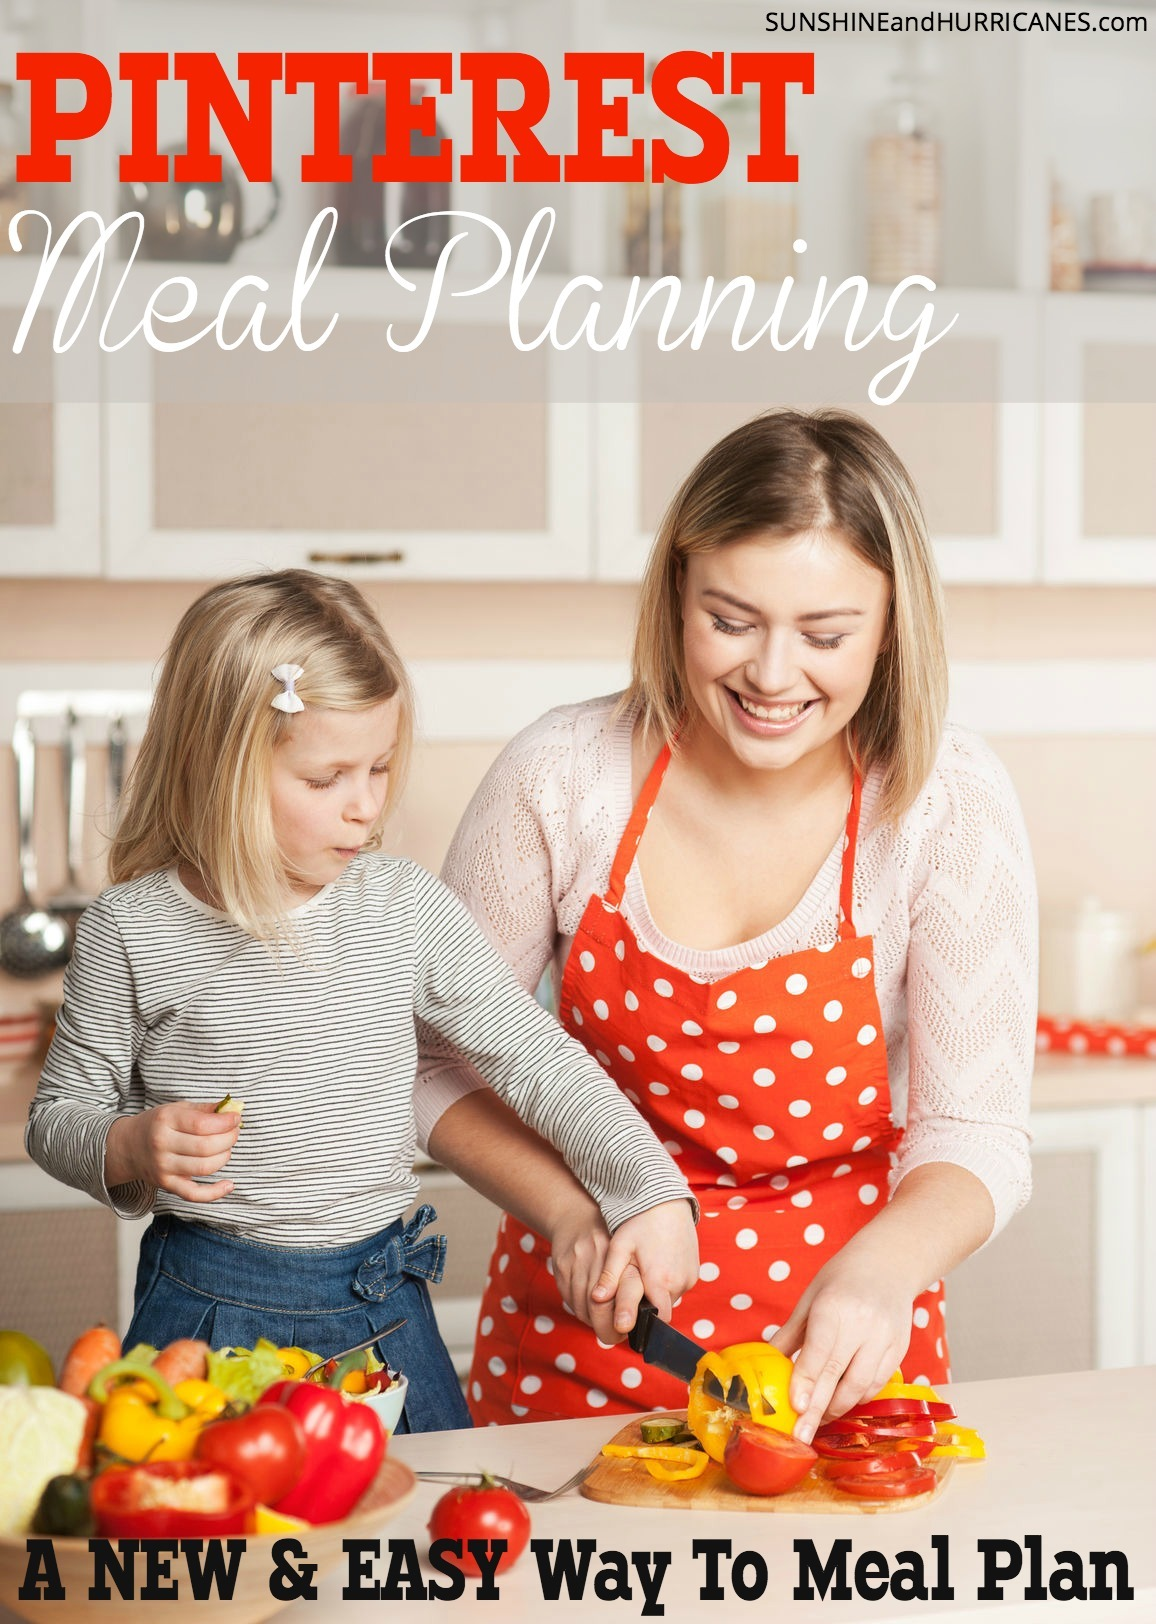 Hate meal planning? Want to make getting dinner on the table easier!? This post has a NEW approach to meal planning that does everything but cook the food for you. 4 weeks of meals all tested and family friendly (kids included!) Recipes and printable shopping lists all organized for you using Pinterst boards. Visually pleasing, easy and fun! Pinterest Meal Planning Introduction. SunshineandHurricanes.com